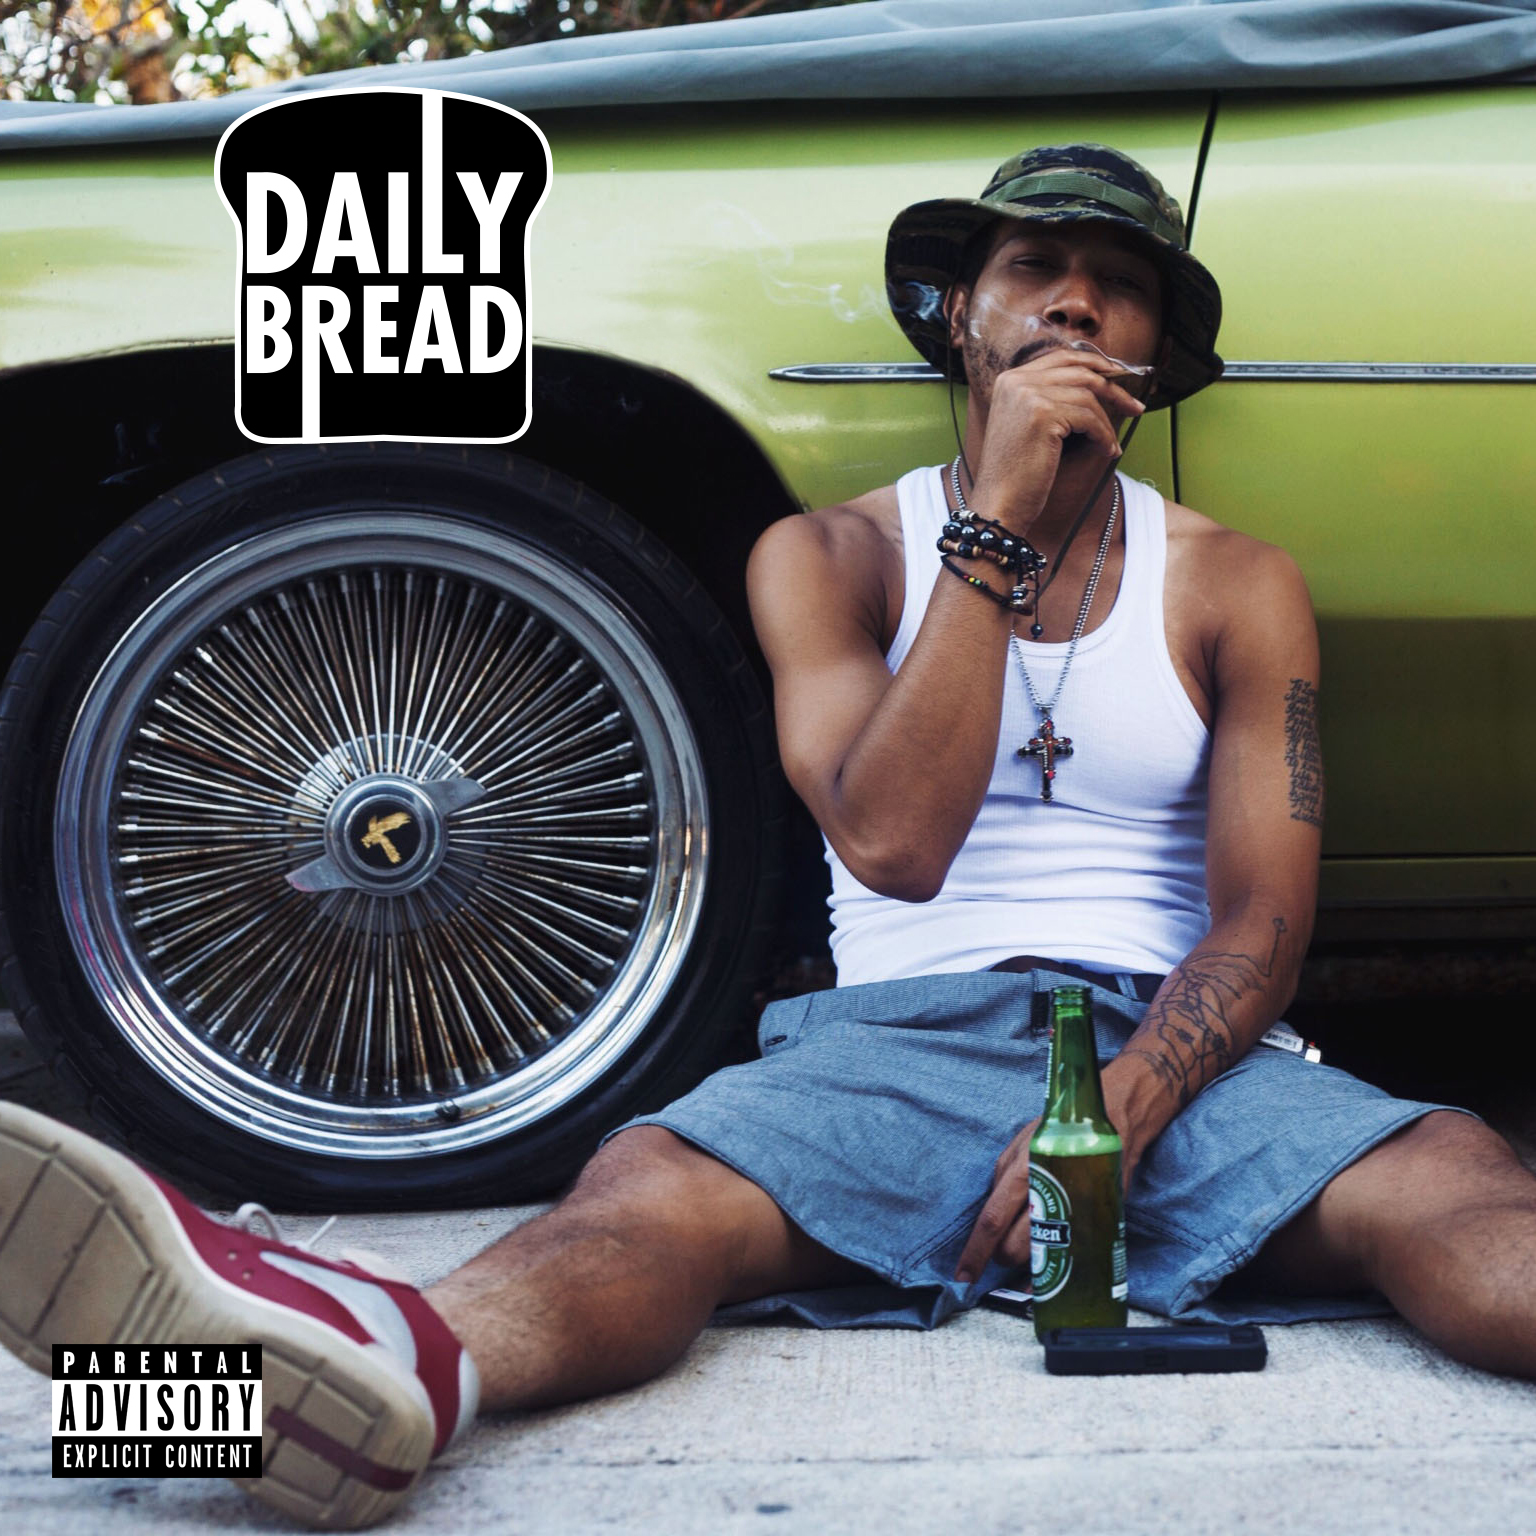 dailybreadcover